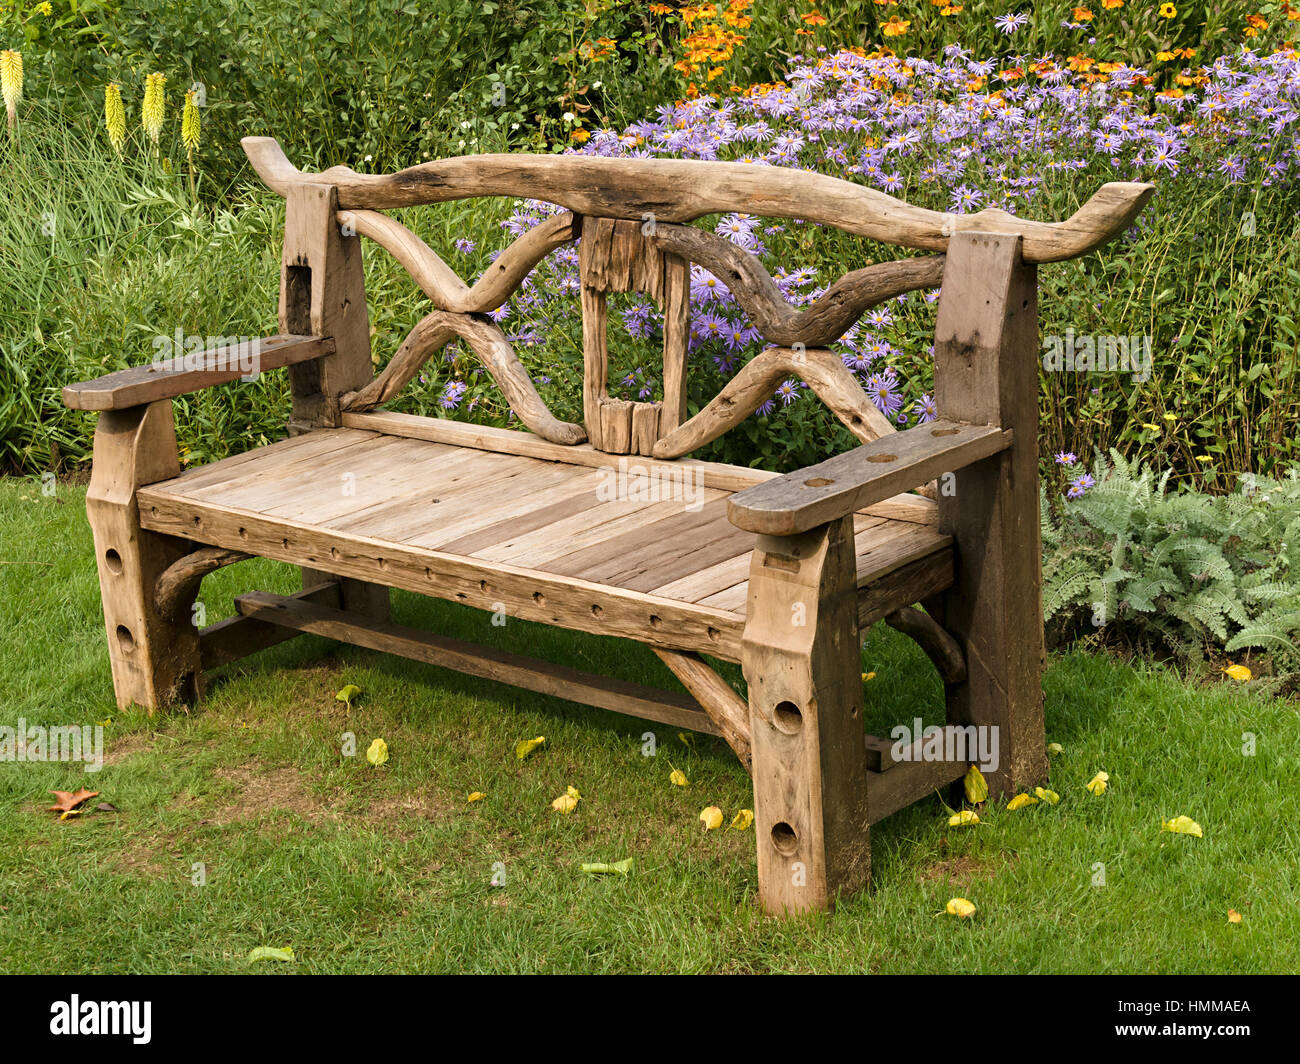 how to make a wooden garden bench - 28 images - benches ...